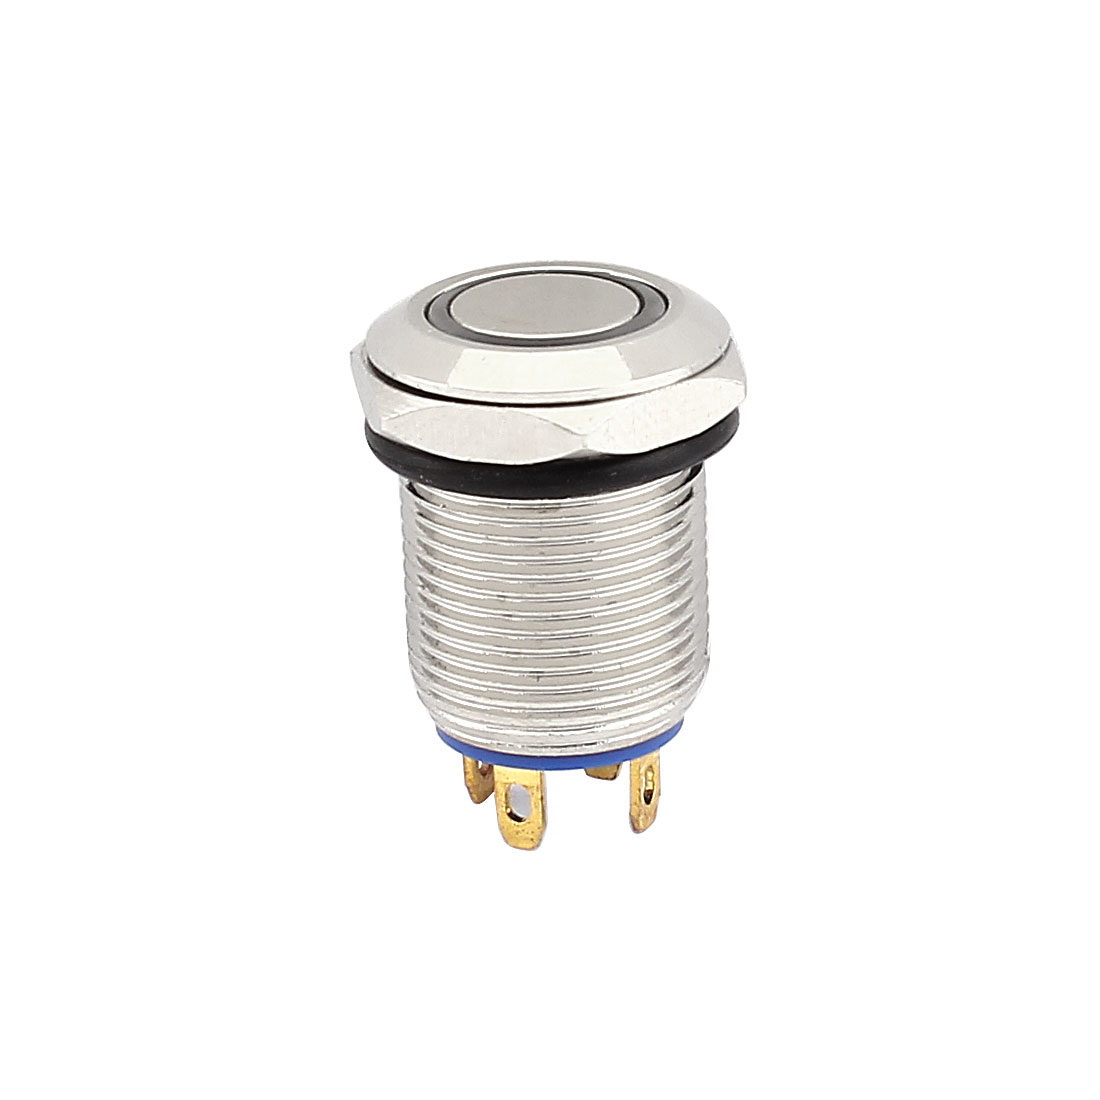 DC 3V Blue LED Angel Eye Shape Cap SPST 4 Terminal Flat Momentary Metal Push Button Pushbutton Switch 12mm Dia